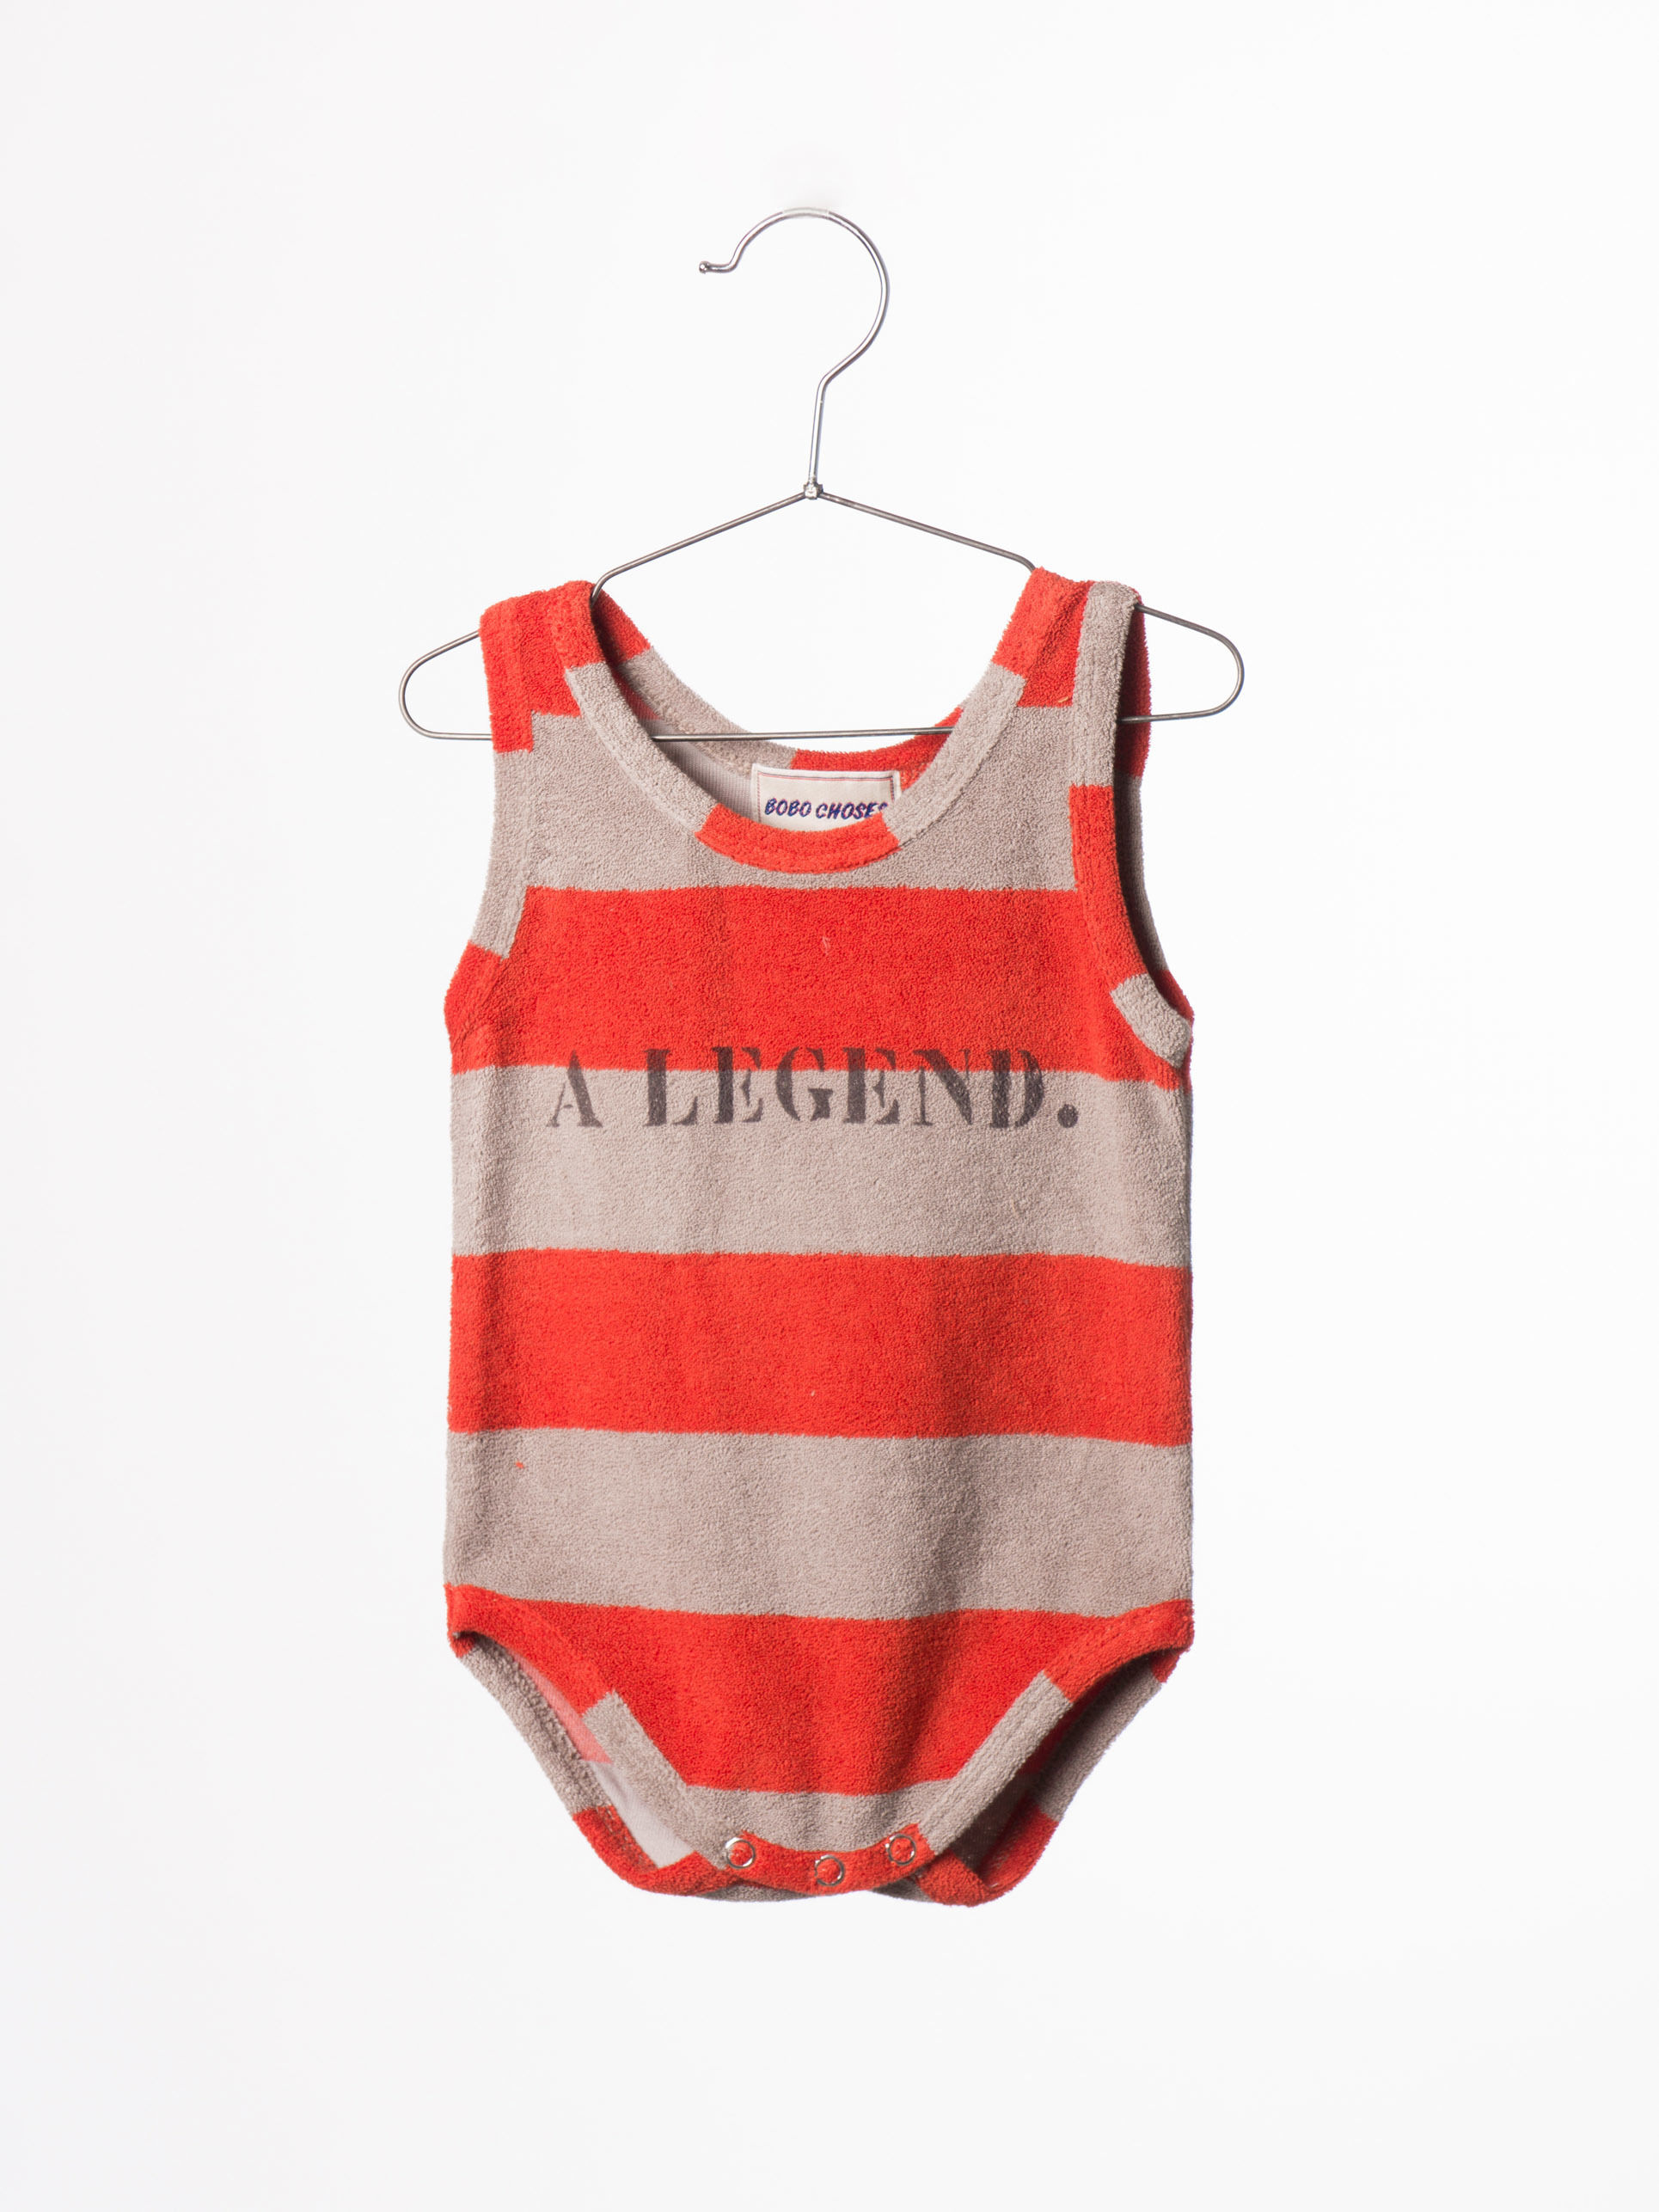 【BOBO CHOSES 2017SS】 Striped Terry Body A Legend